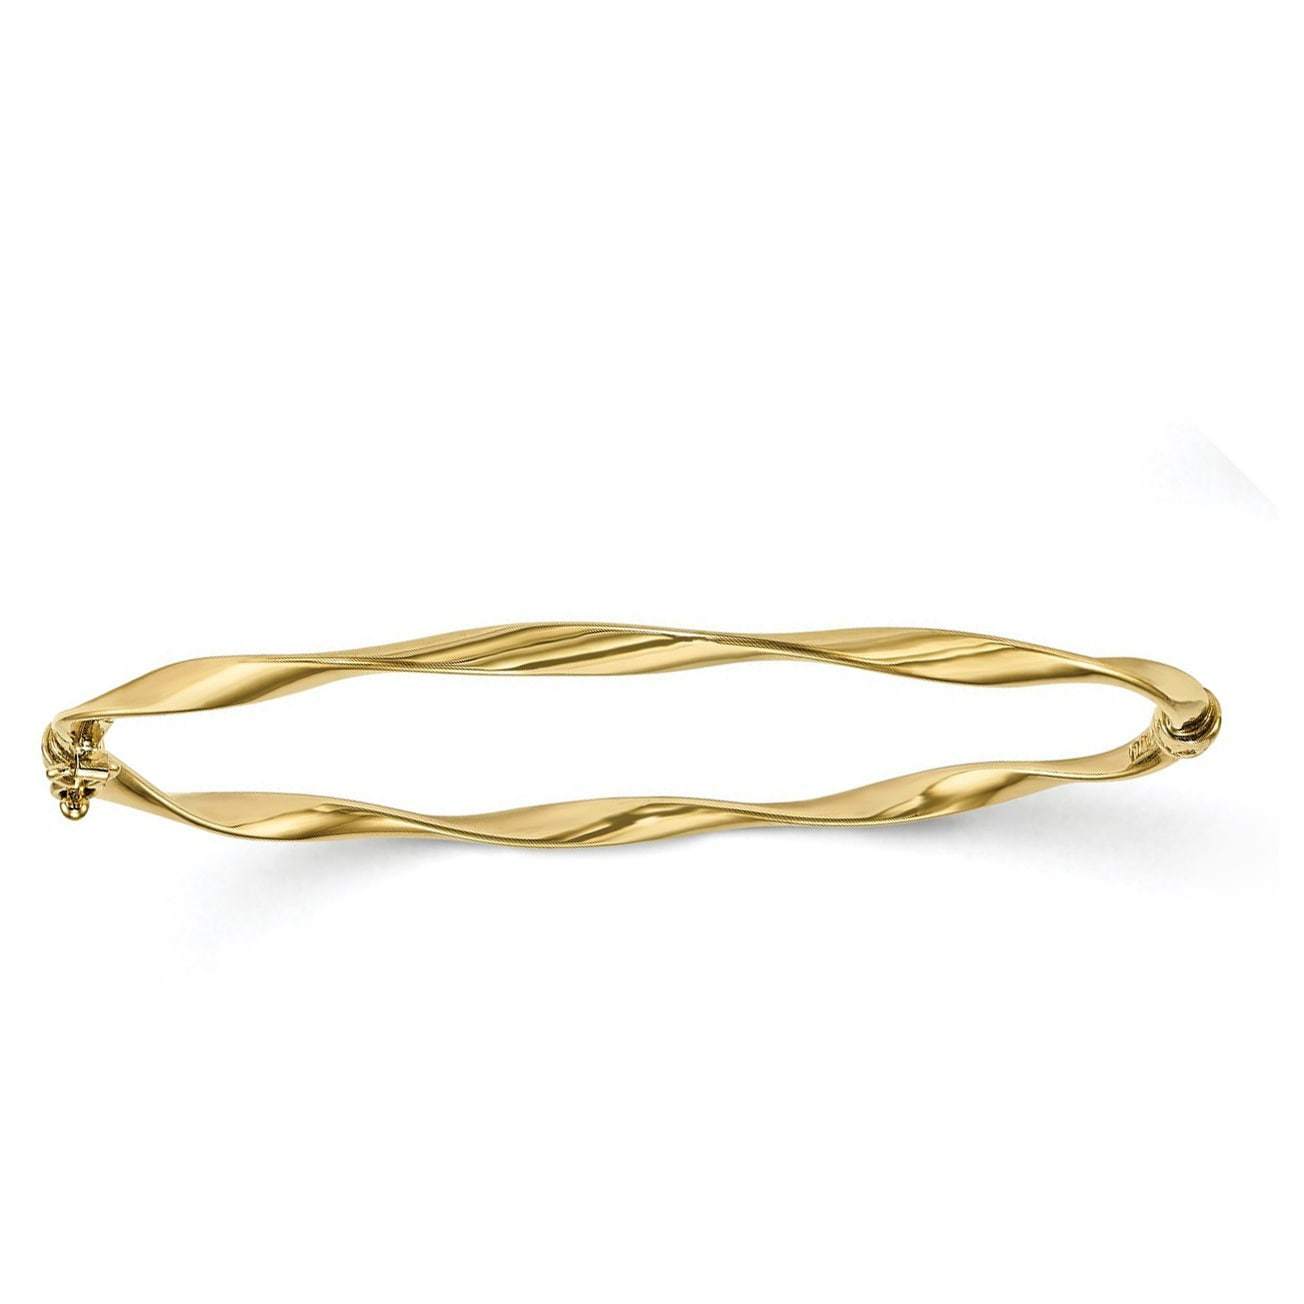 click bangle mardon ea lane jewelers expand bracelets i item full to l bangles karat gold ruby